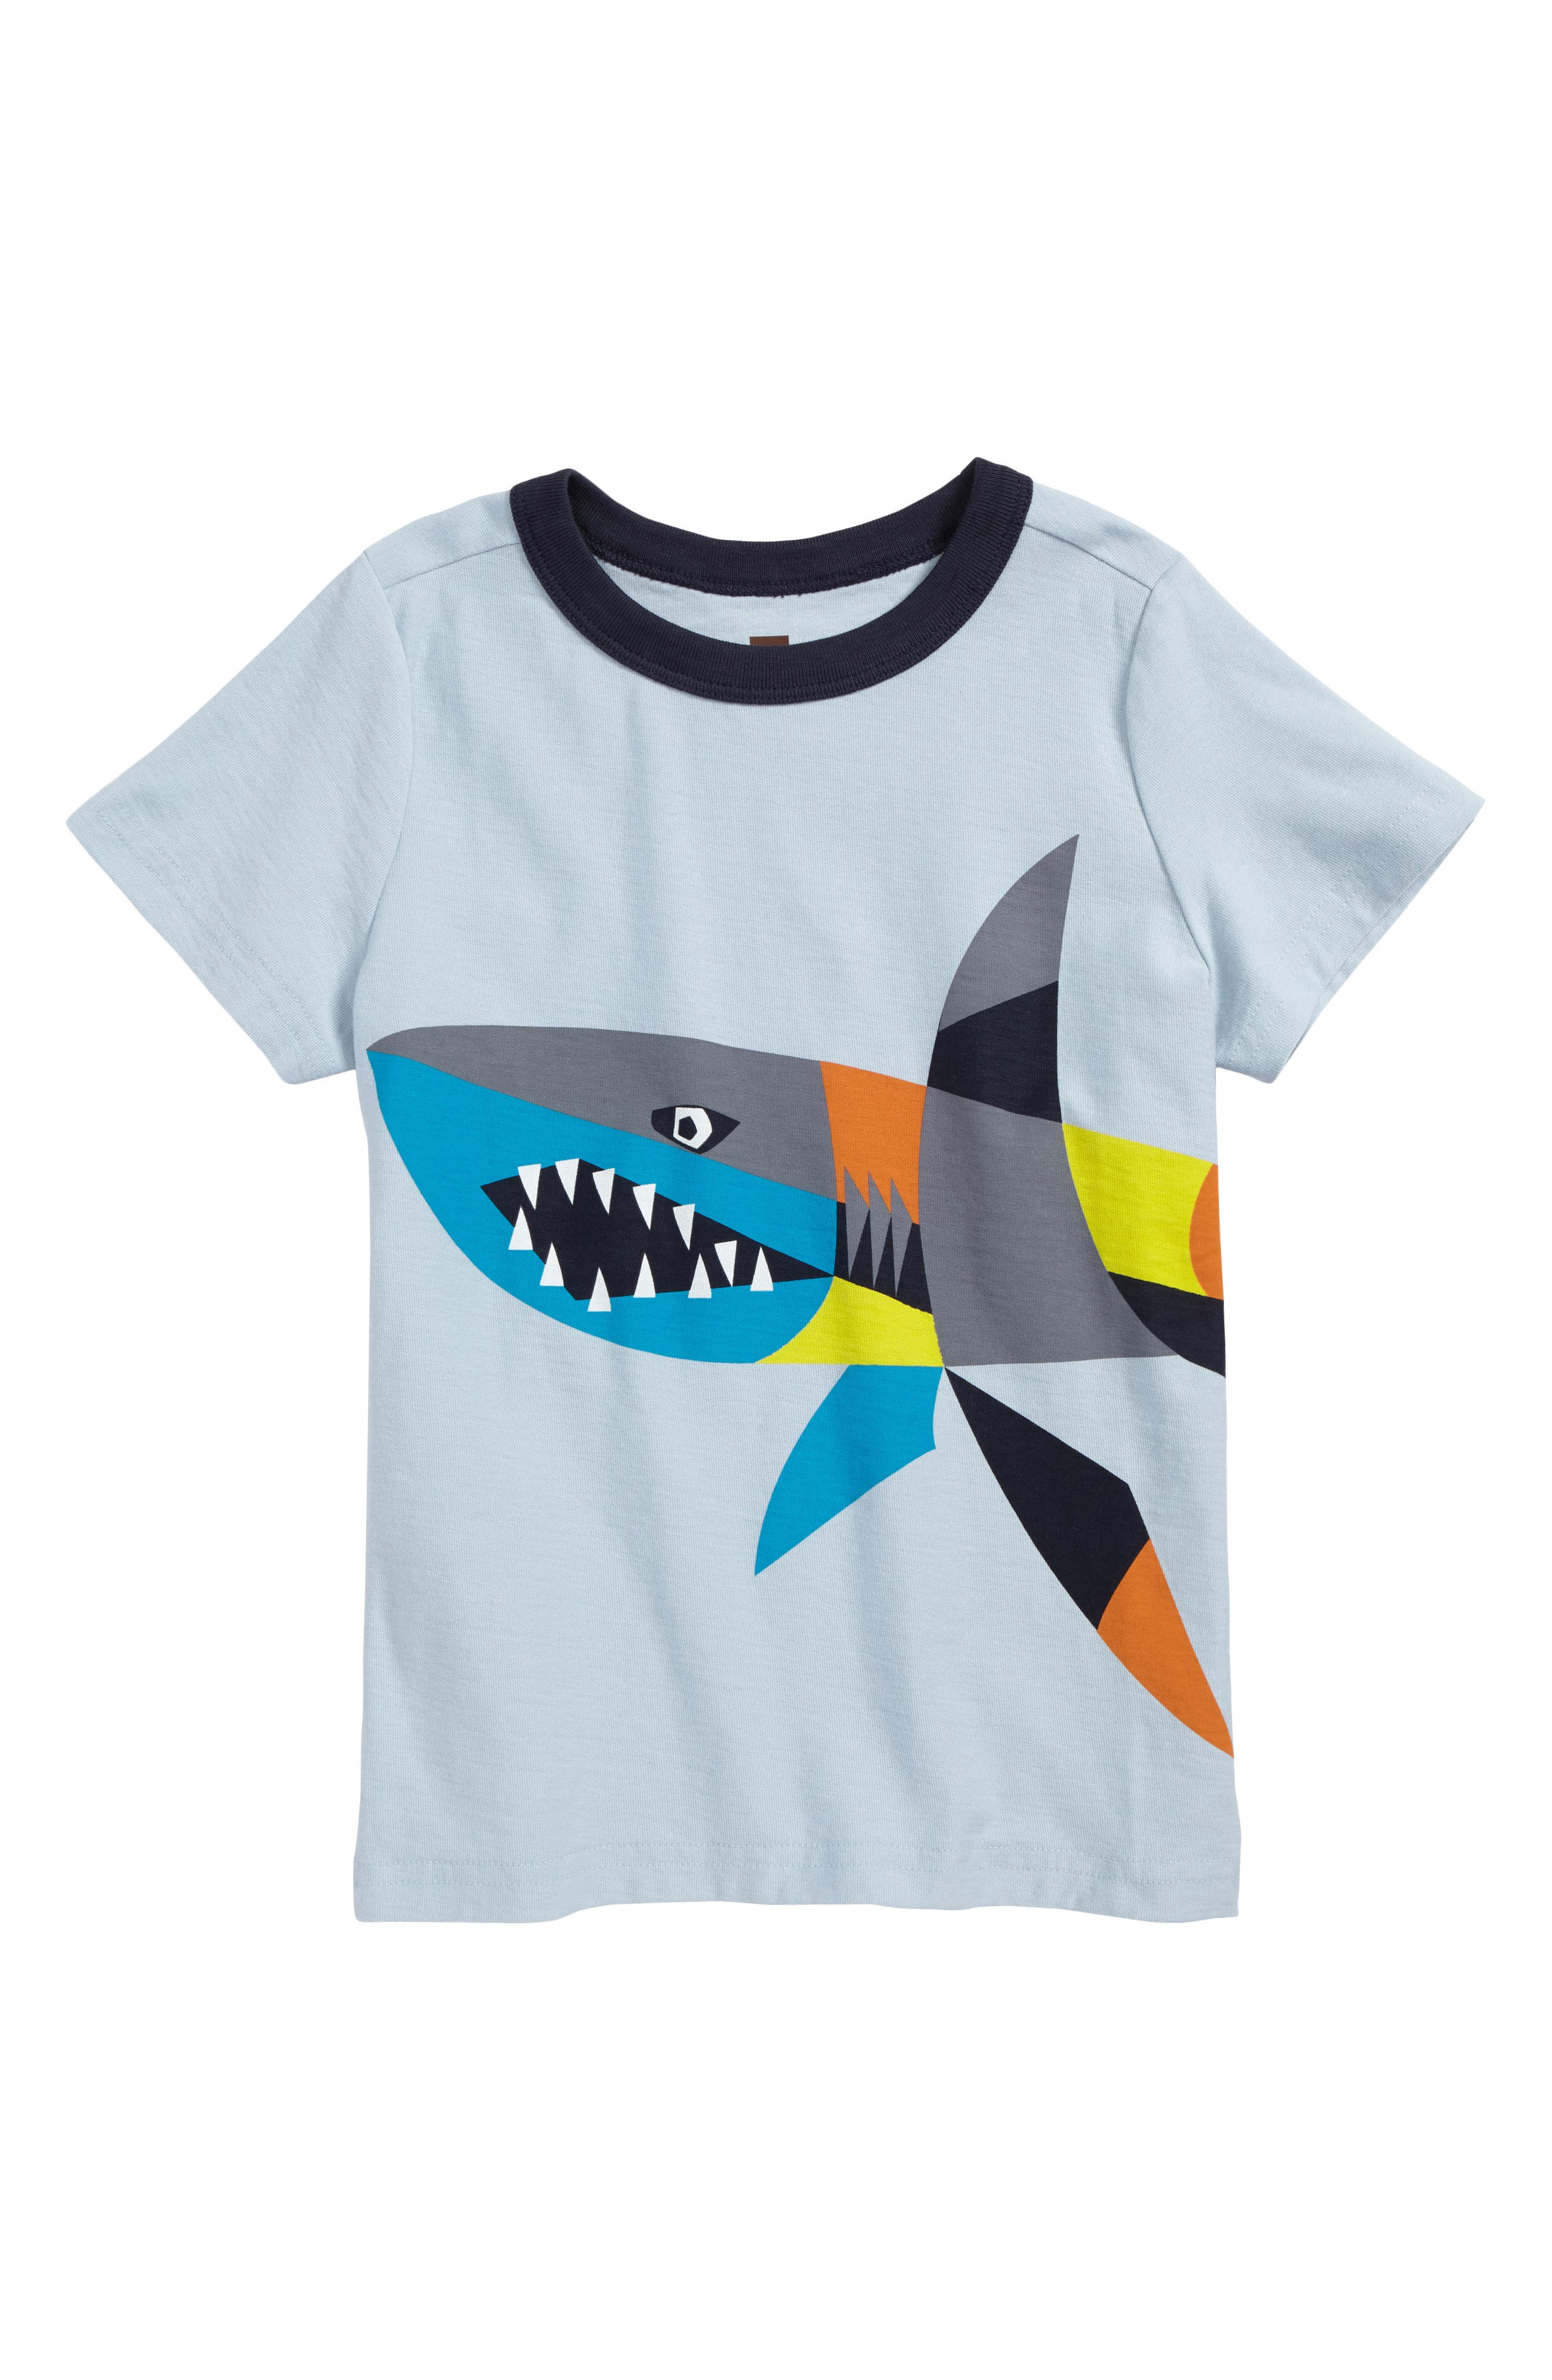 Alternate Image 1 Selected - Tea Collection Chomper T-Shirt (Toddler Boys & Little Boys)